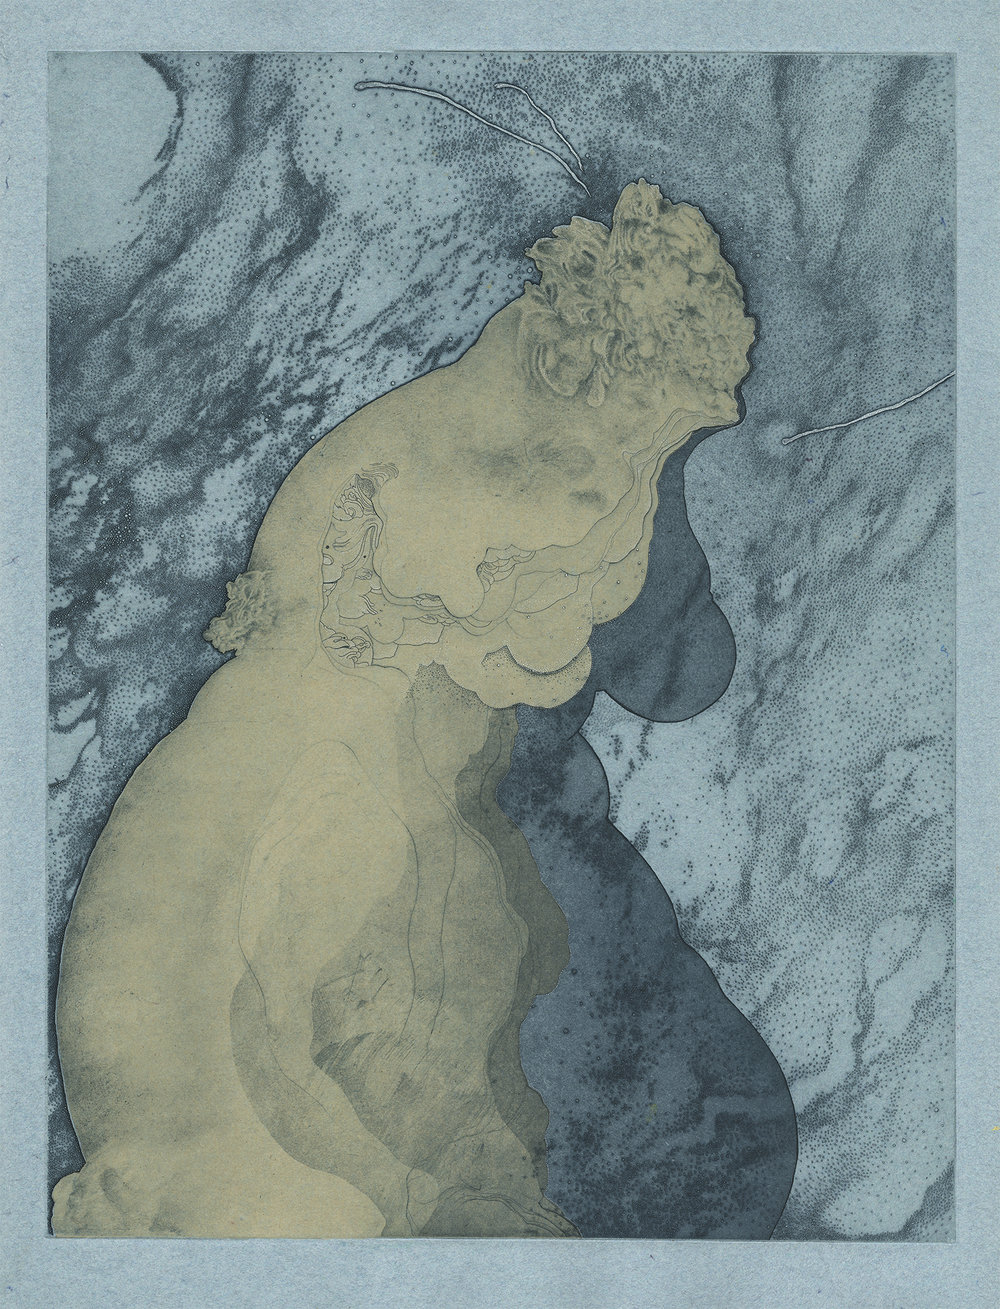 Siren , 2018. Hannah Adair. Hand-colored etching on handmade paper, 24 x 18 in. Courtesy of Hannah Adair.